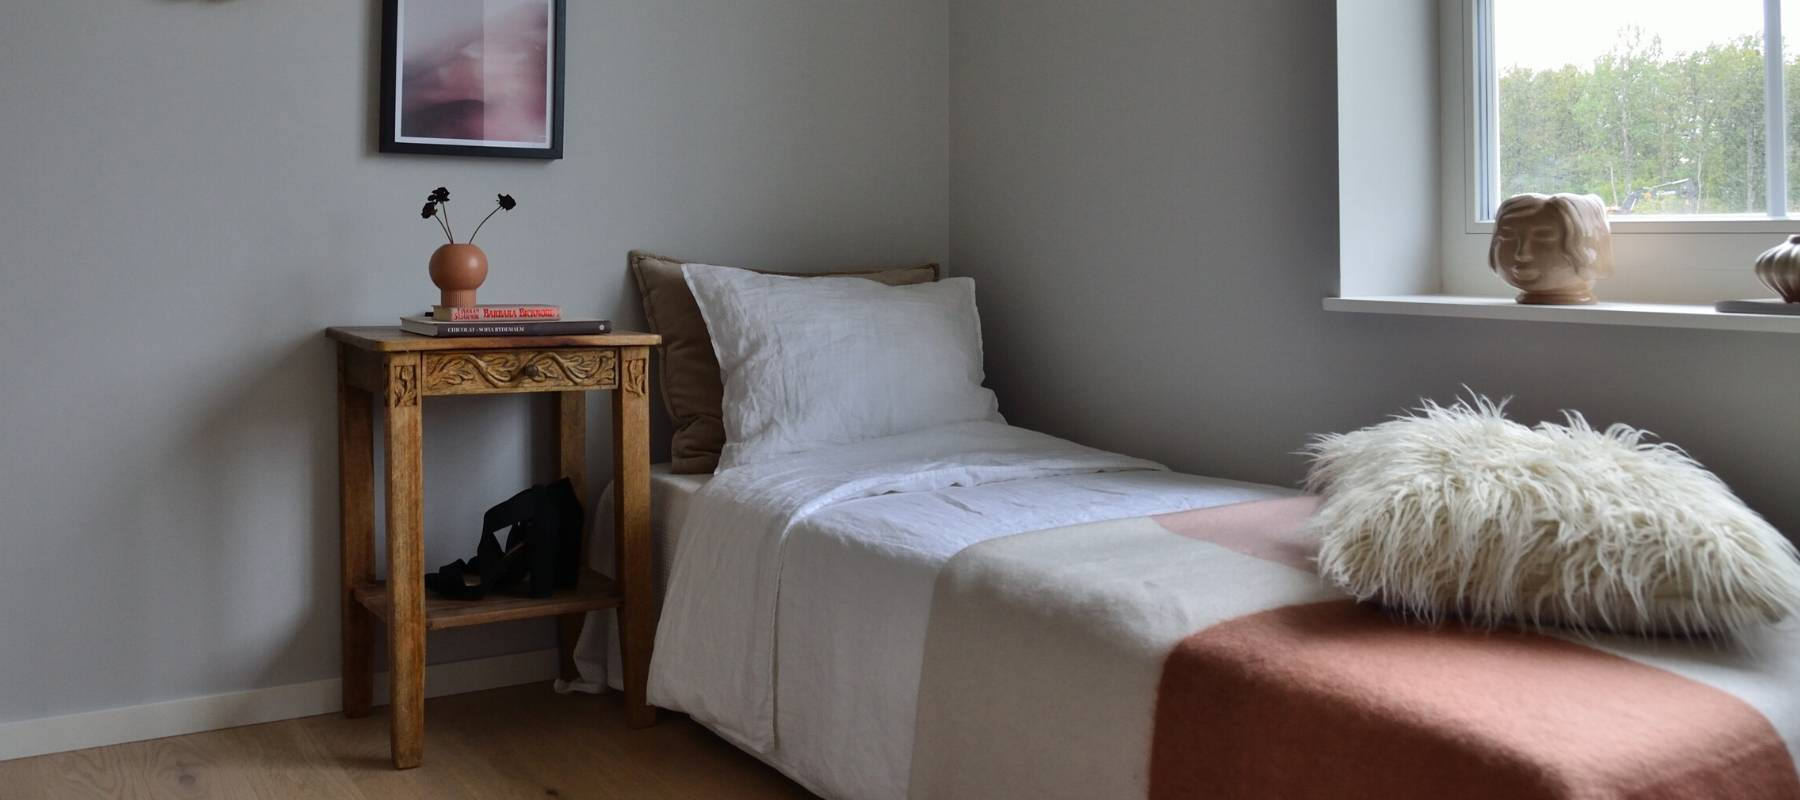 Single bed with sheet and wooden bedside table